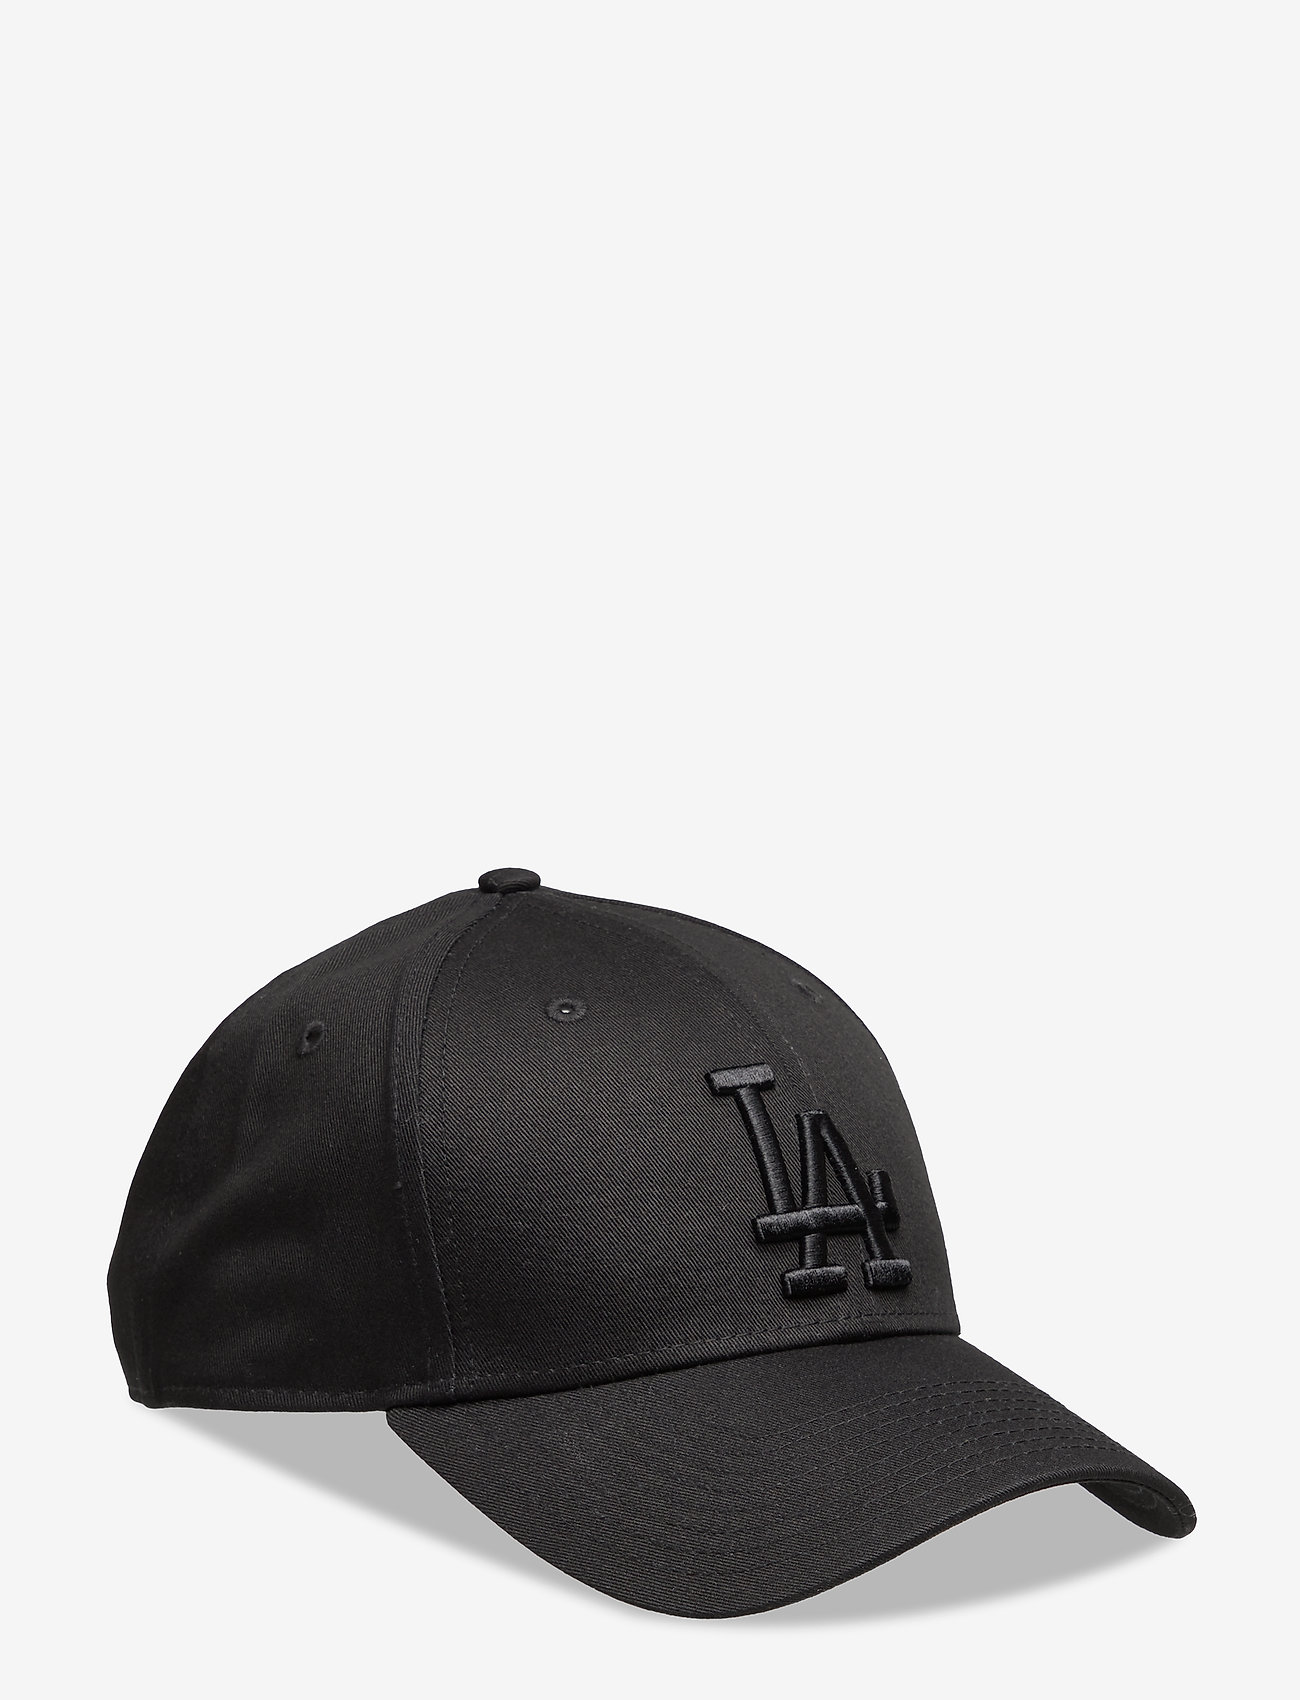 New Era - LEAGUE ESSENTIAL 940 LOSDOD 2 - caps - blkblk - 0